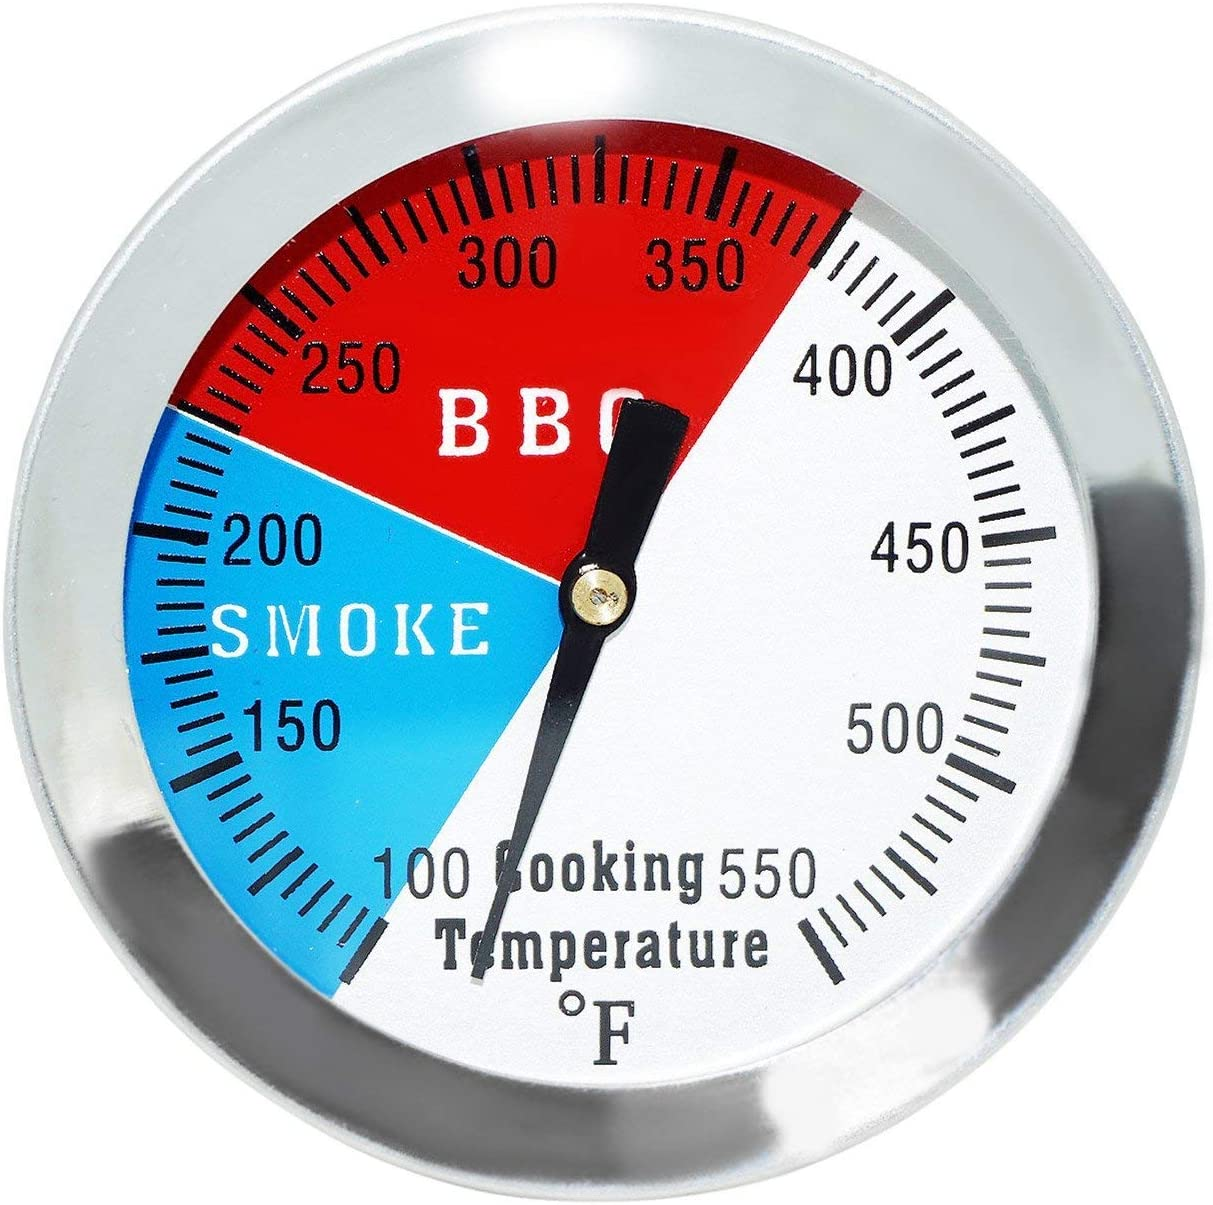 Onlyfire Professional Bbq Charcoal Smoker Gas Grill Dia 1 8 Thermometer Temperature Gauge Fits For Weber Grill Models Q120 220 300 320 And Others Barbecue Smoker Accessories Gioncosurgery Patio Lawn Garden